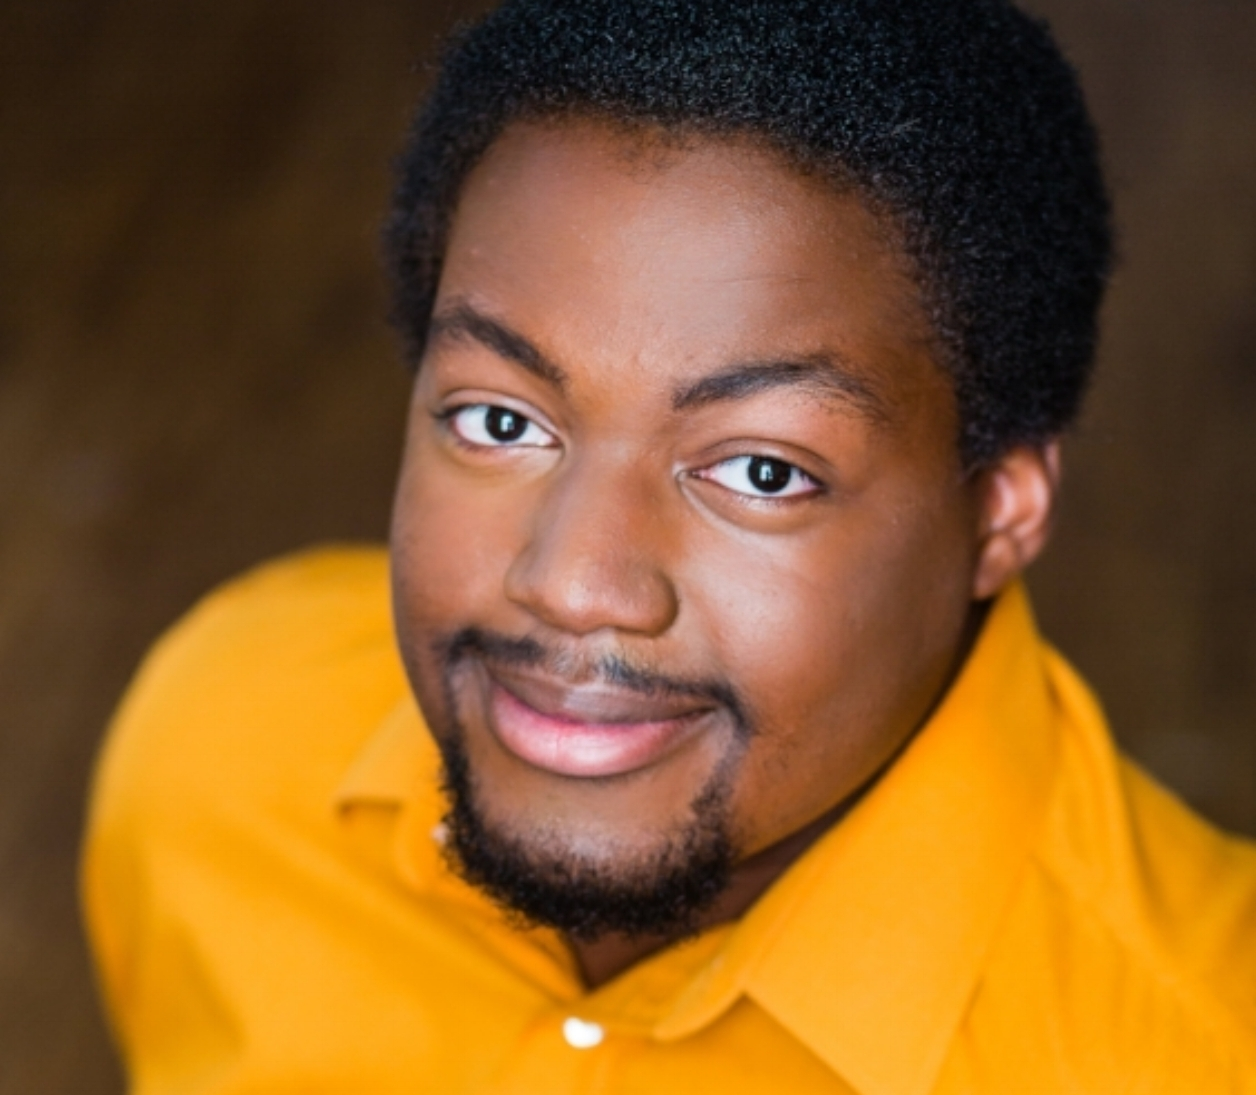 Malcolm Payne Jr. is a graduate of the University of North Texas with two Bachelors of Music degrees in Vocal and Flute Performance. Payne constantly seeks to share his love of opera with new and familiar audiences. Recent engagements include Don Giovanni,  The Three Little Pigs  ( The Dallas Opera) ; Cinderella's Prince/Wolf 1,  Into the Woods  (Rockwall Summer Musicals), and Audrey II,  Little Shop of Horrors  ( Firehouse Theatre). Future engagements include Jim,  Porgy and Bess  (F ort Worth Opera) and General Boom in Payne's fourth touring season with The Dallas Opera's Education Outreach program. Payne enjoys baking in his spare time.